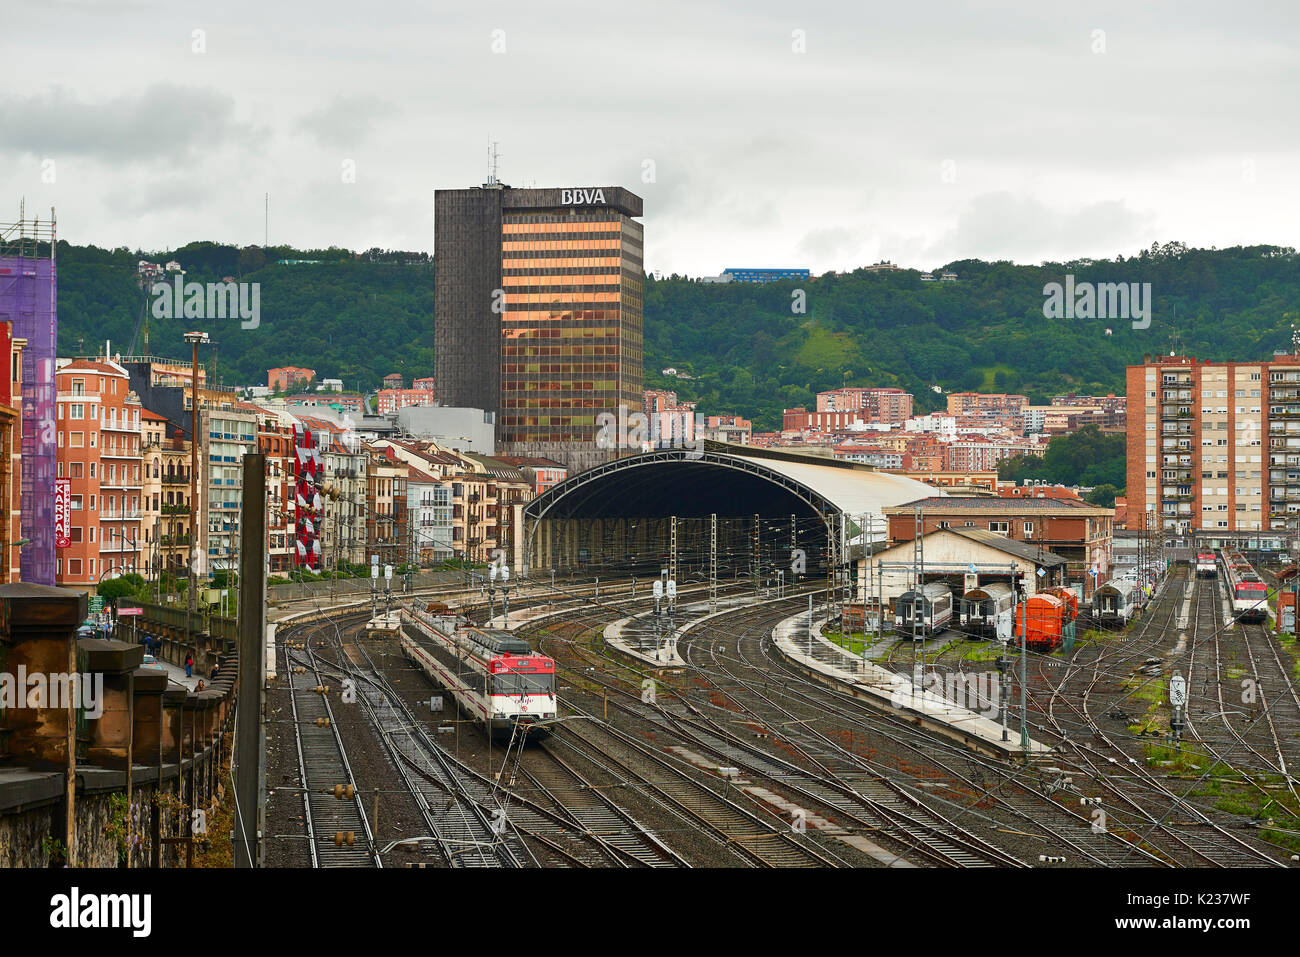 Bilbao, Biscay, Basque Country, Euskadi, Spain, Europe - Stock Image